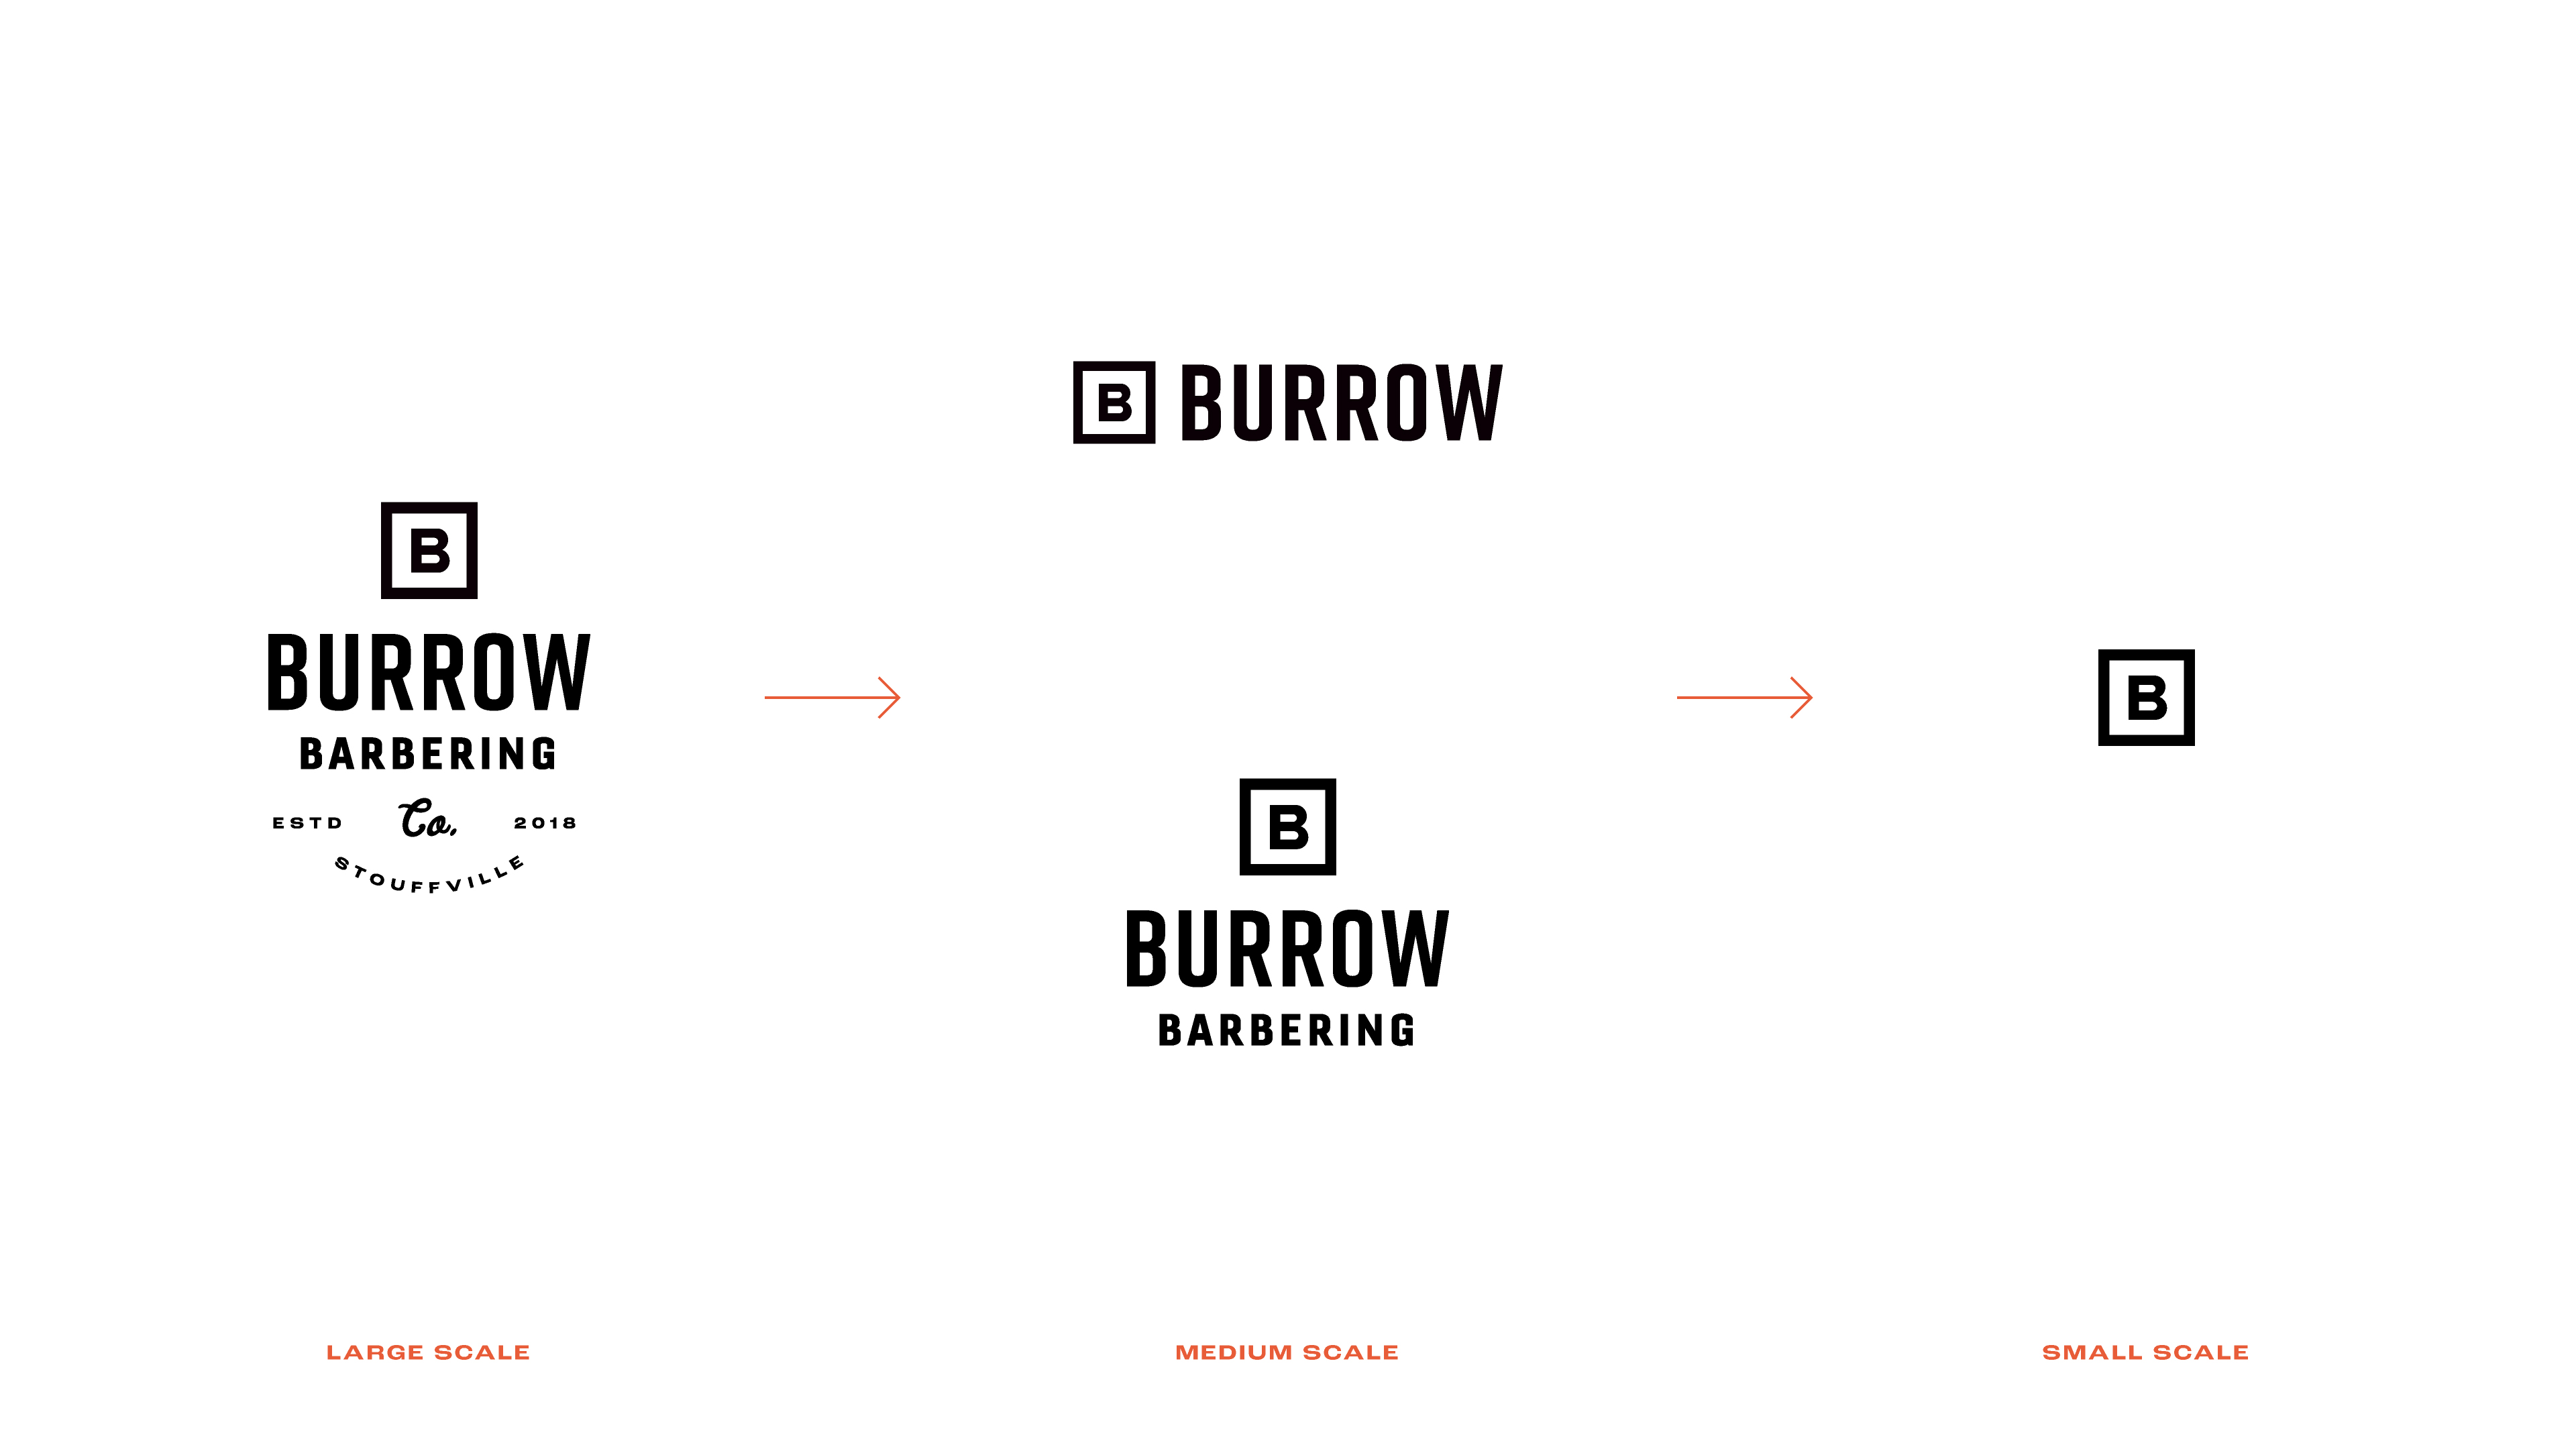 burrow-barbering-co-secondary-logo-system-a